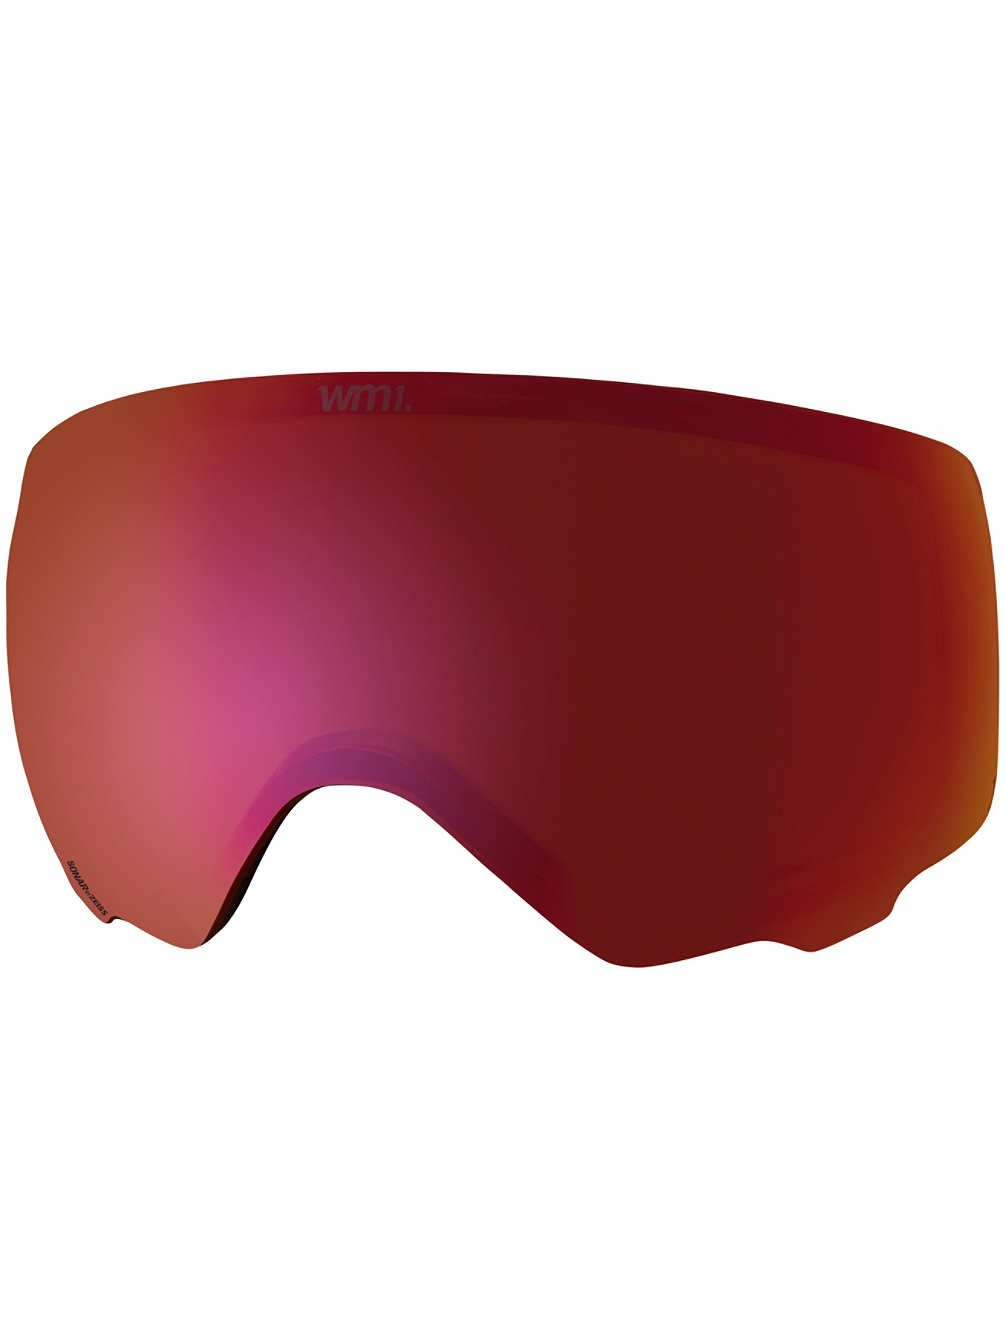 Anon WM1 Snow Goggle Replacement Lens Sonar Infraed 57% VLT + Case by Anon